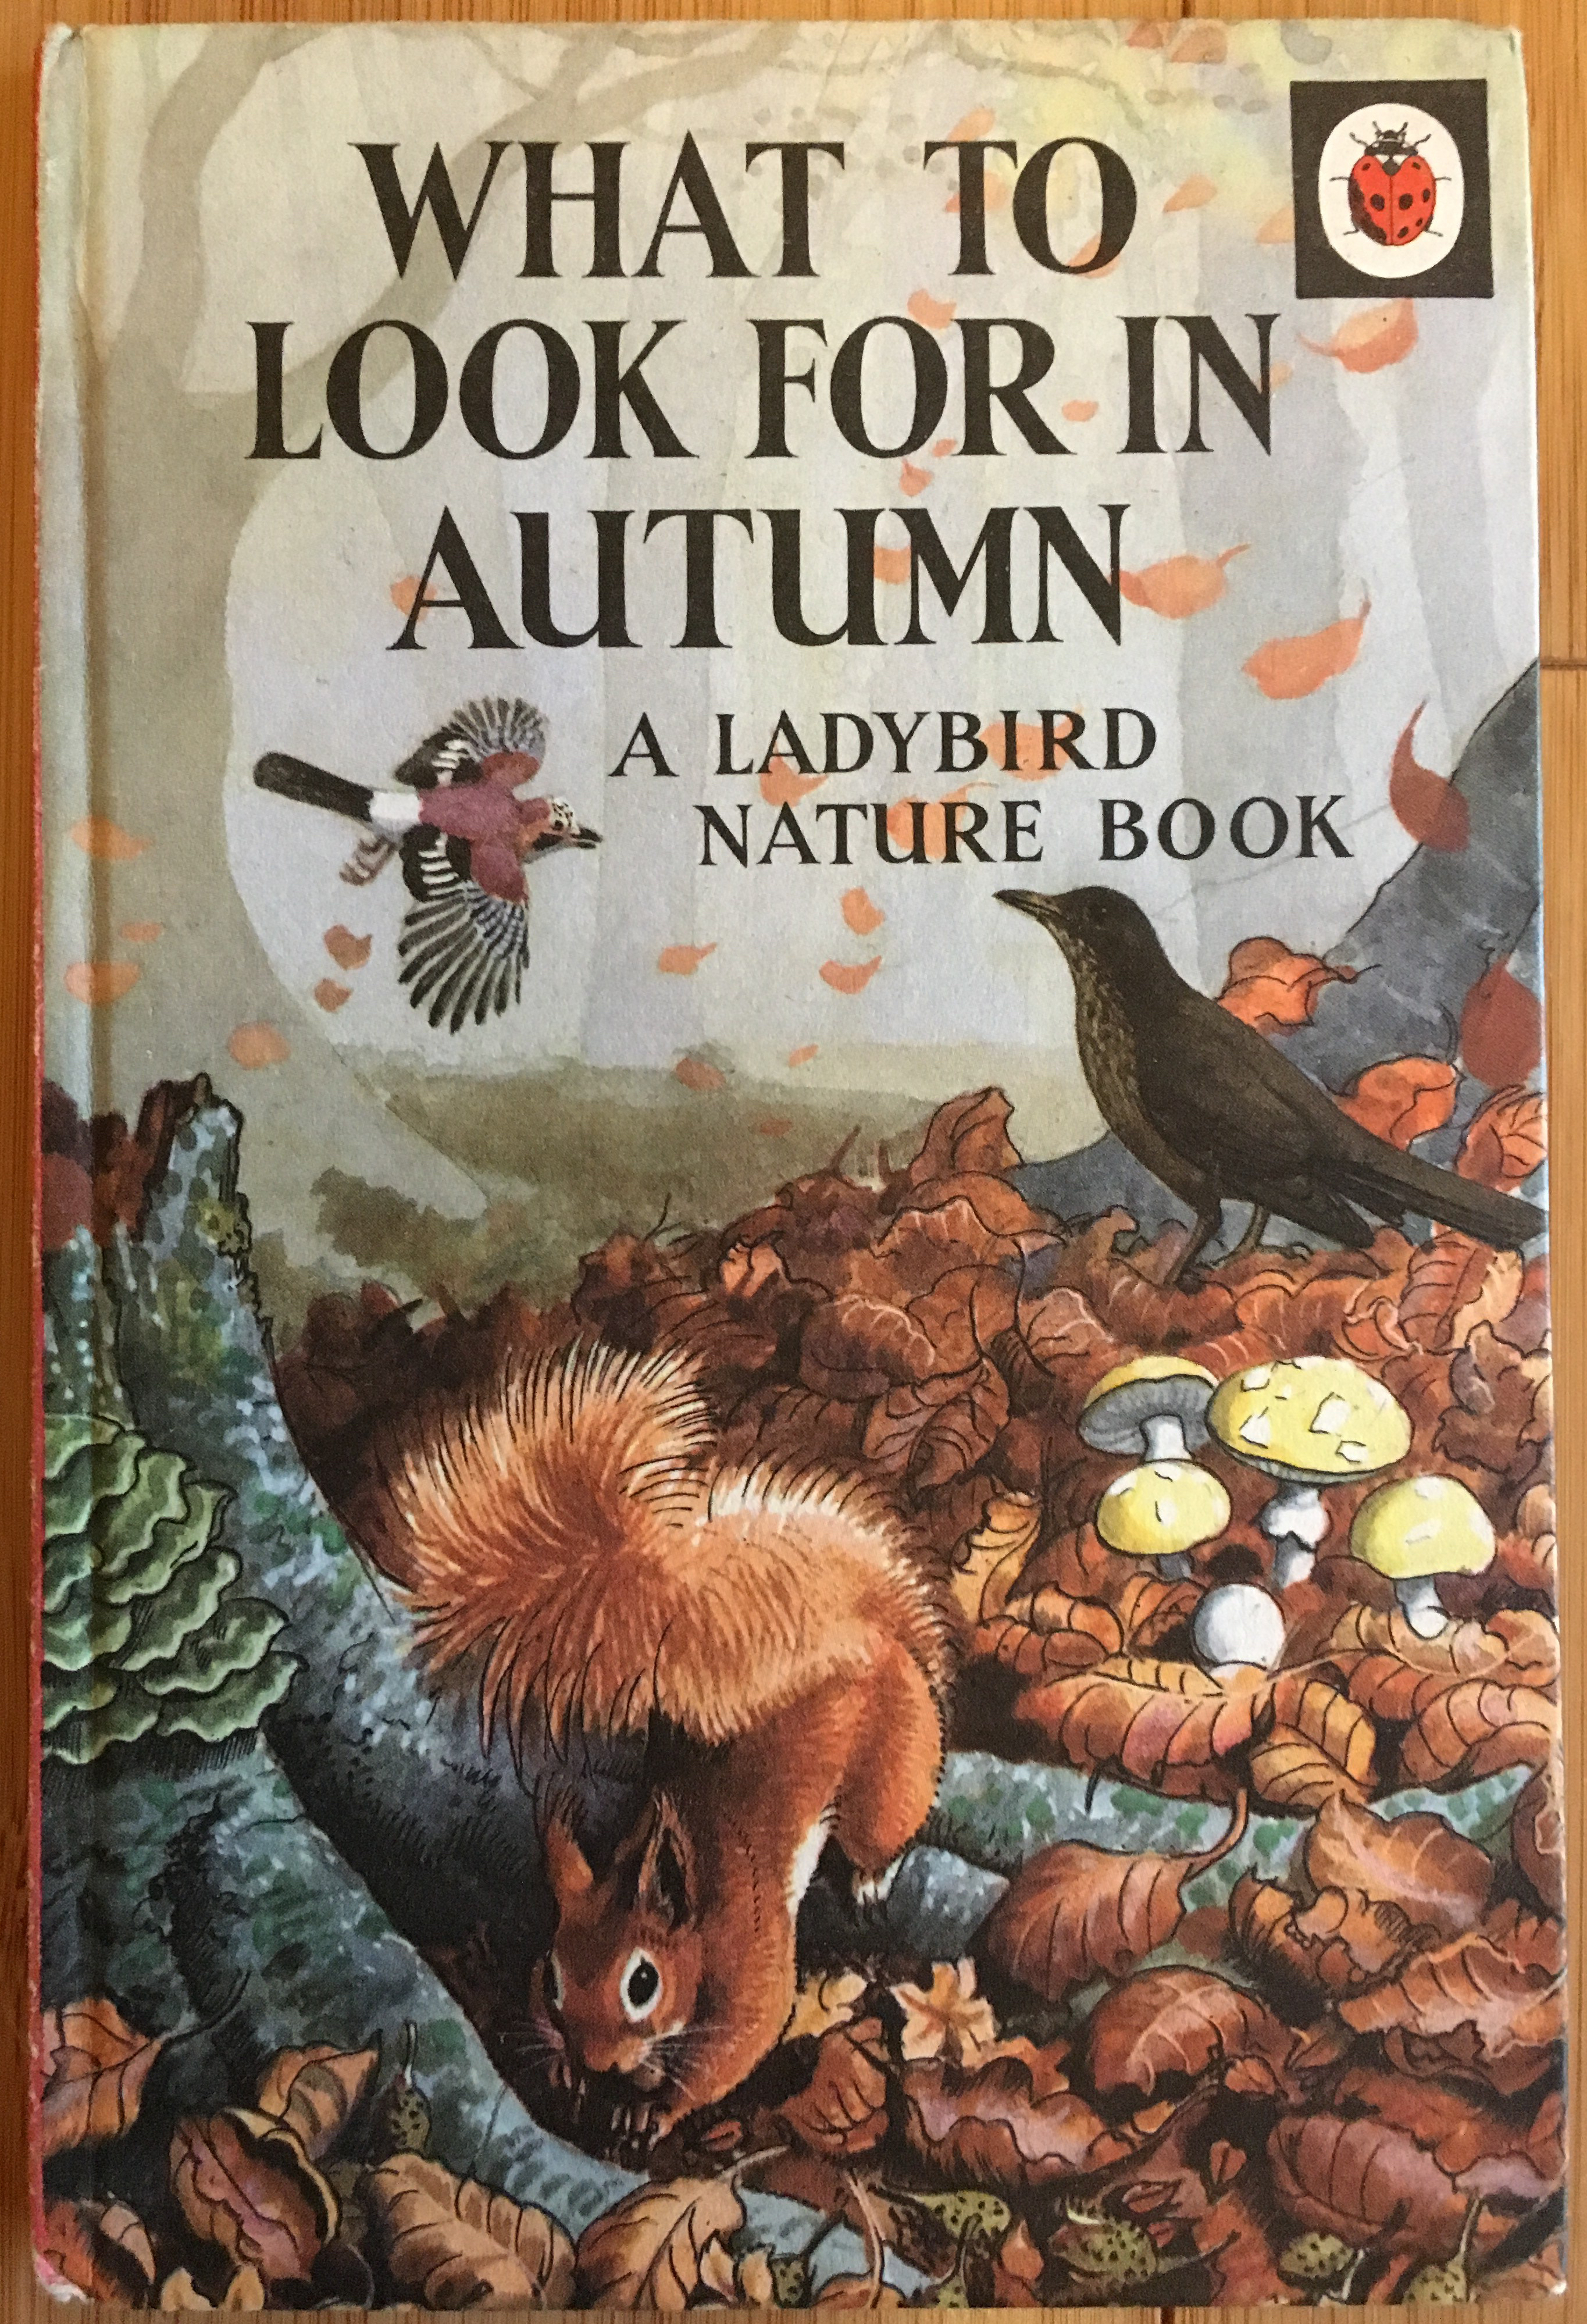 A copy of the book What to Look For In Autumn, a Ladybird Nature Book by E L Grant Watson and C F Tunnicliffe